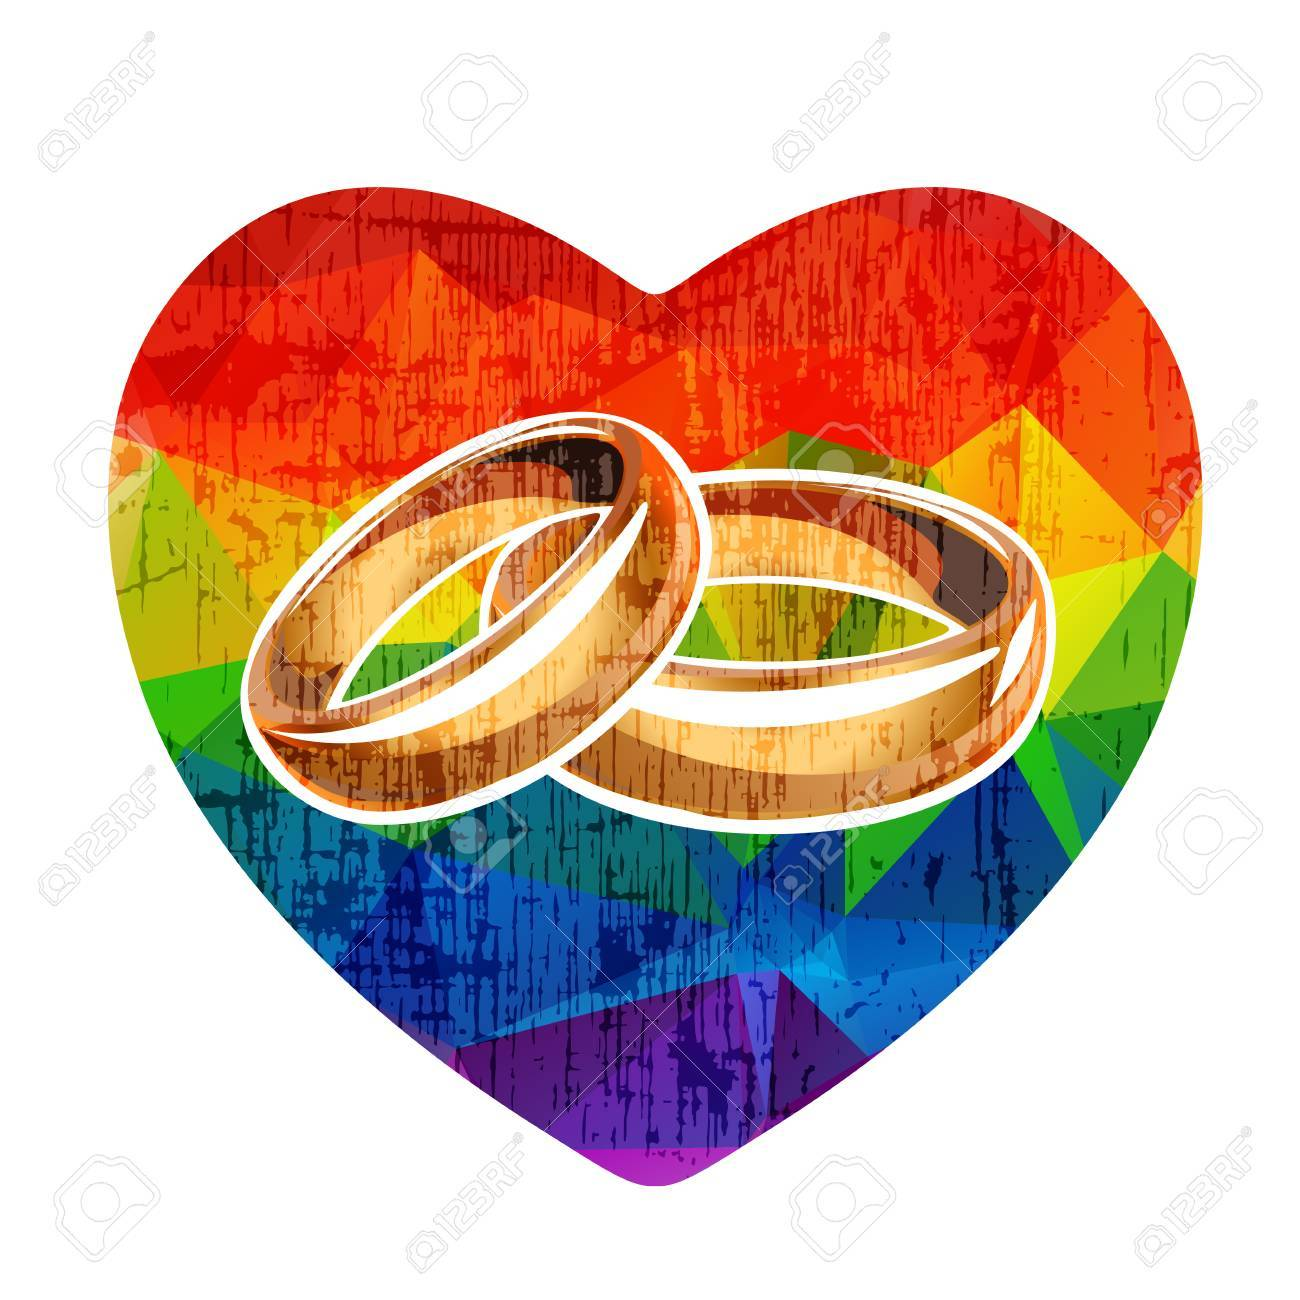 partner wedding rainbow women life titanium men groove unisex rings silver center jewelry lgbt products ring pride